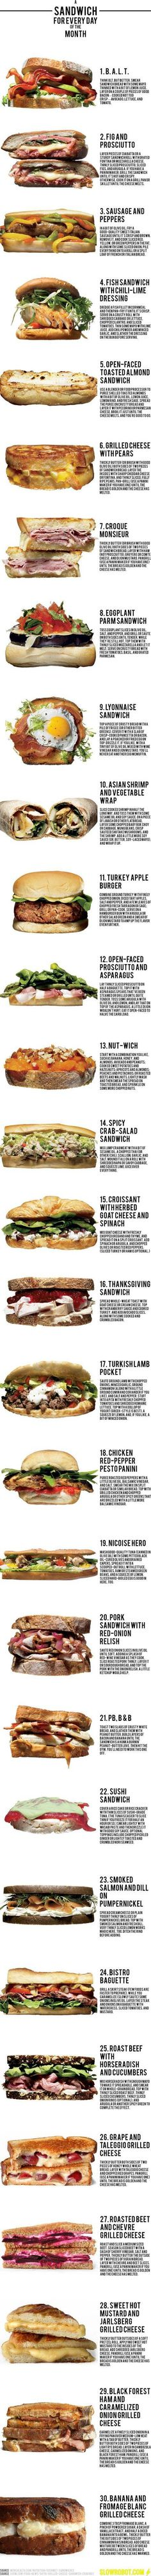 A sandwich for every day of the month.